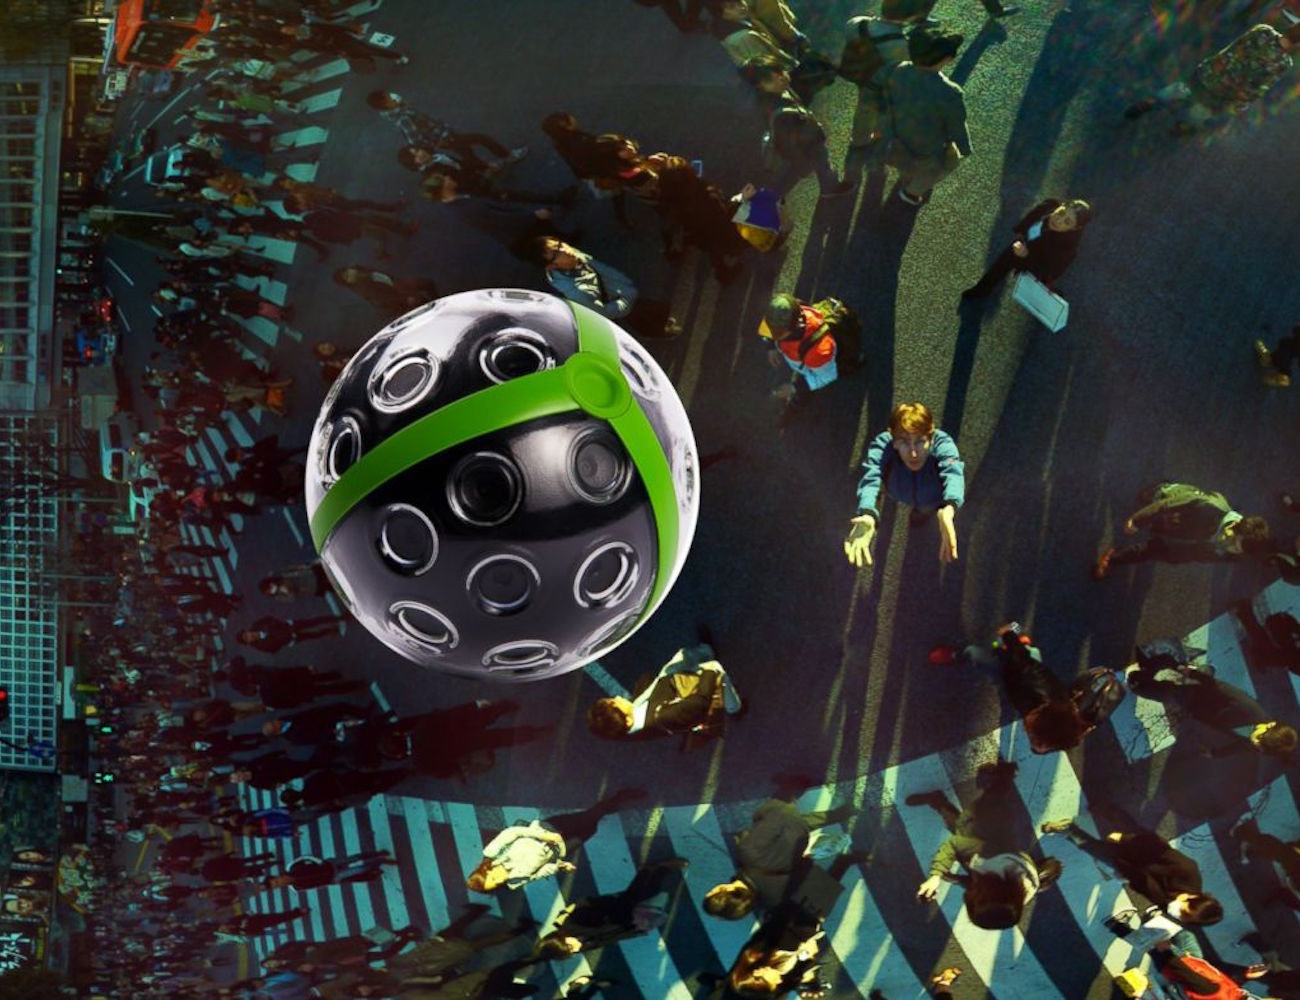 Panono-Panoramic-Ball-Camera-01